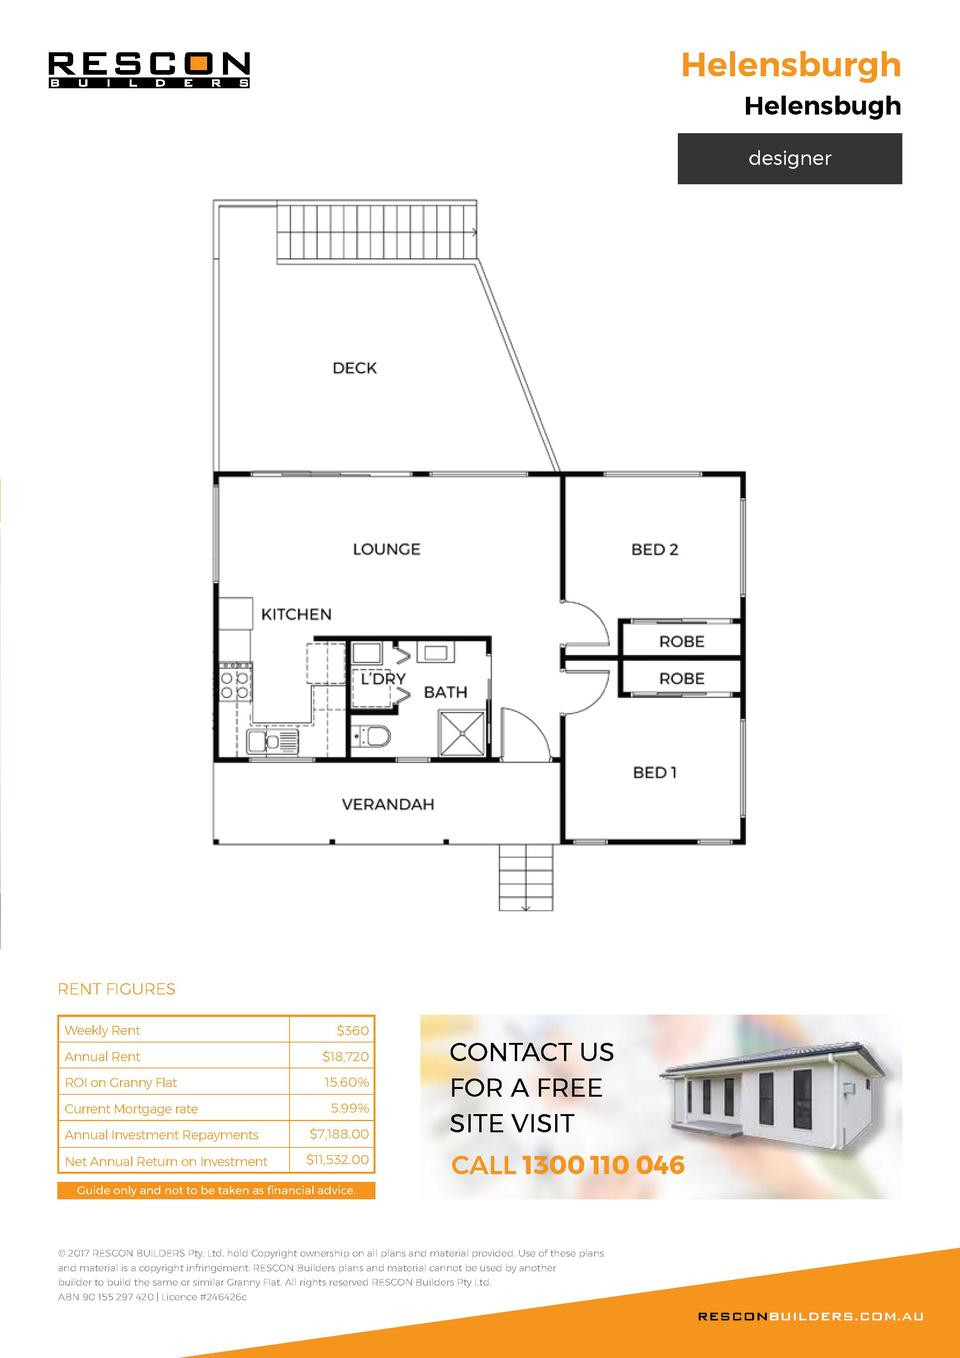 Helensburgh Helensbugh designer  RENT FIGURES Weekly Rent   360  Annual Rent   18,720  ROI on Granny Flat  15.60   Current...